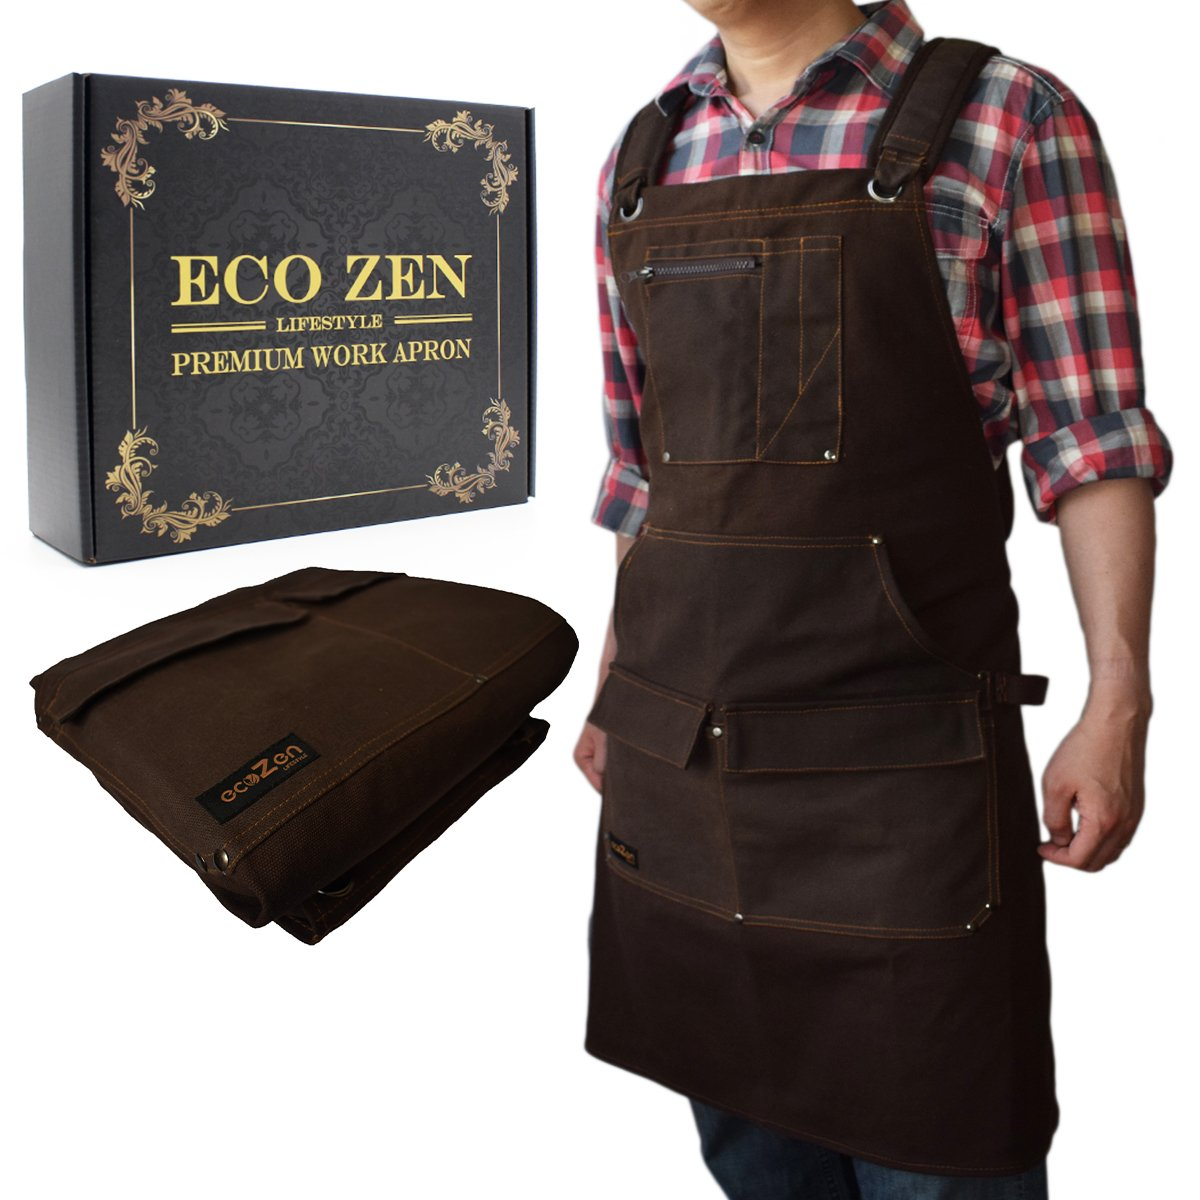 Shop Apron - Waxed Canvas Work Apron with Pockets | Waterproof, Fully Adjustable to Comfortably Fit Men and Women Size S to XXL | Tough Tool Apron to Give Protection and Last a Lifetime by ecoZen Lifestyle